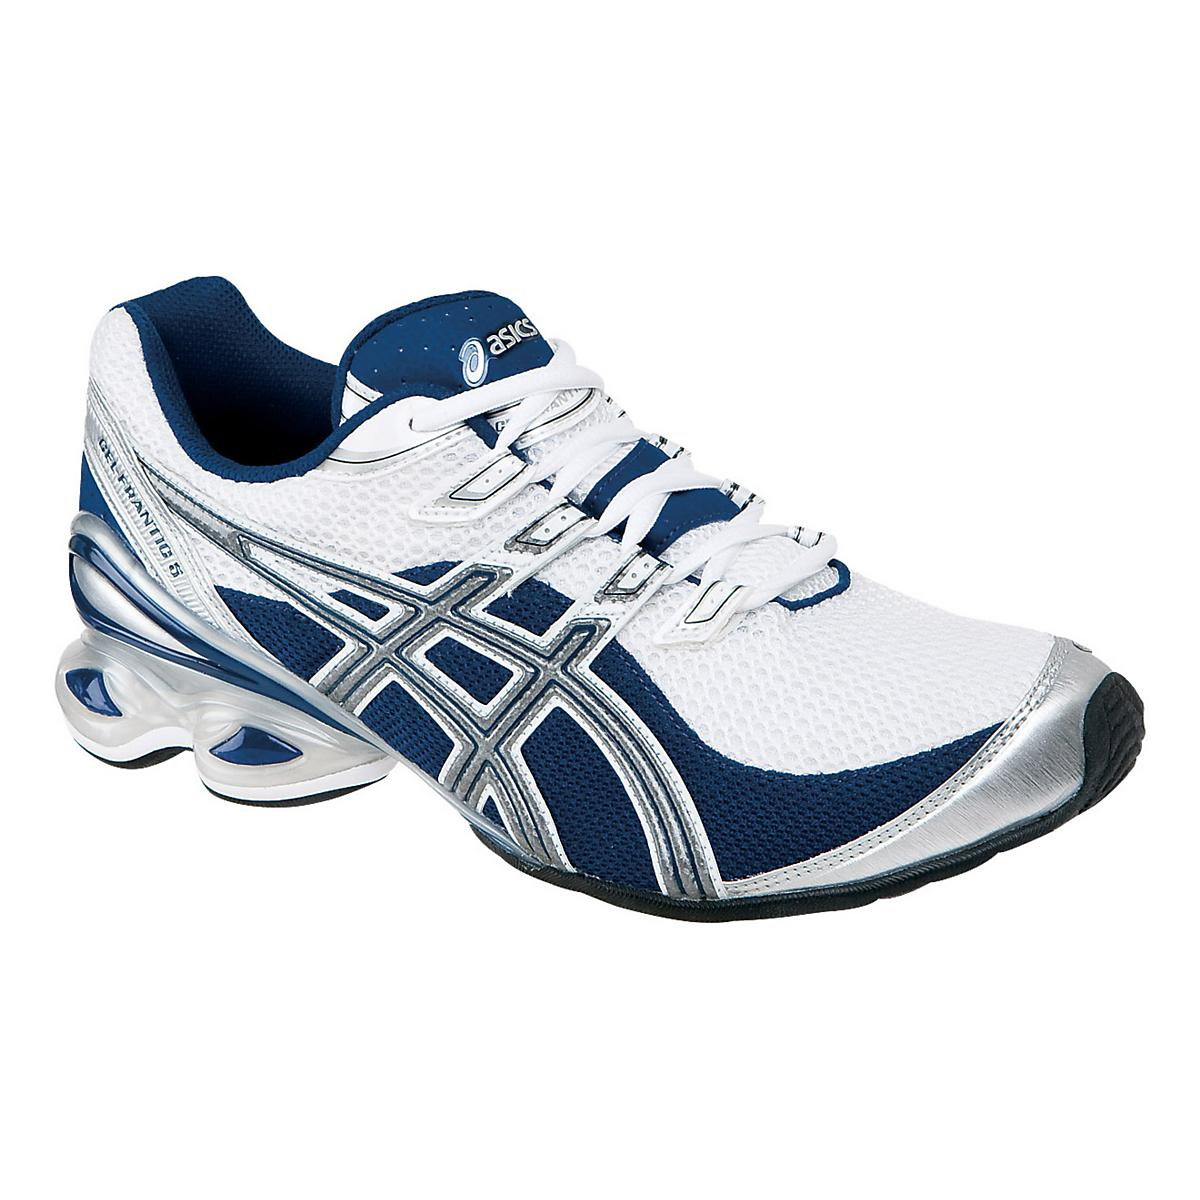 ed54d53b871 Mens ASICS GEL-Frantic 5 Running Shoe at Road Runner Sports